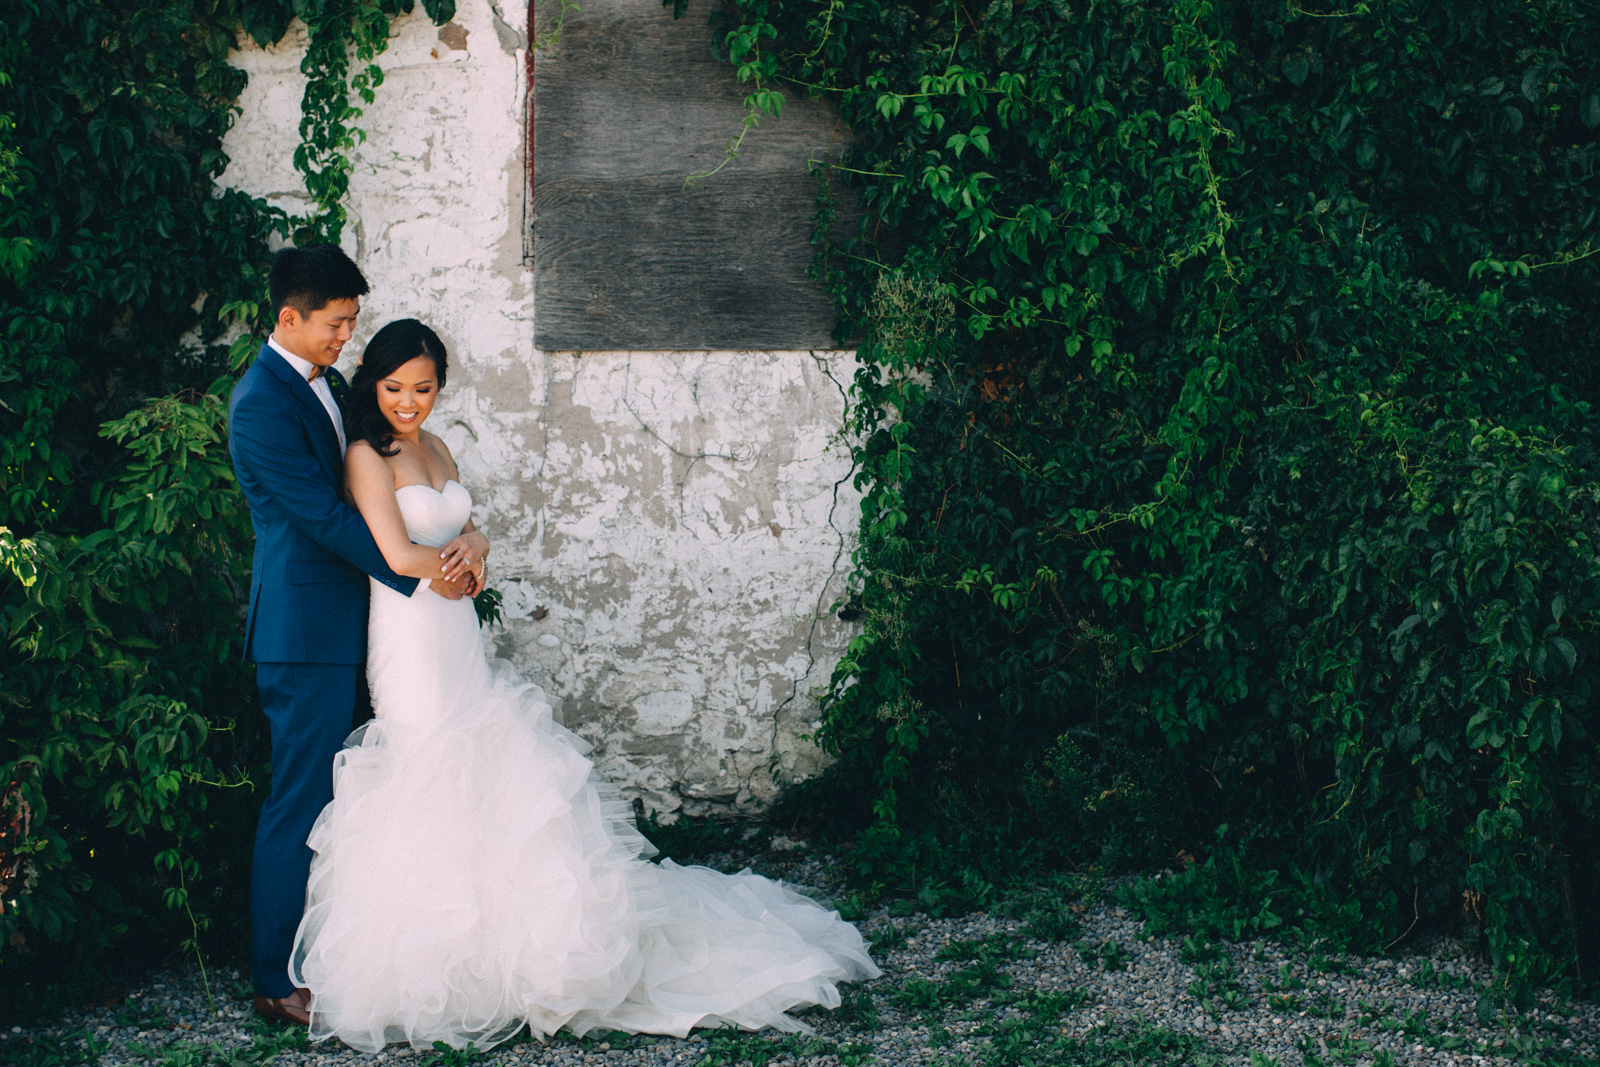 cambium-farms-wedding-photography-by-sam-wong-of-artanis-collective_23